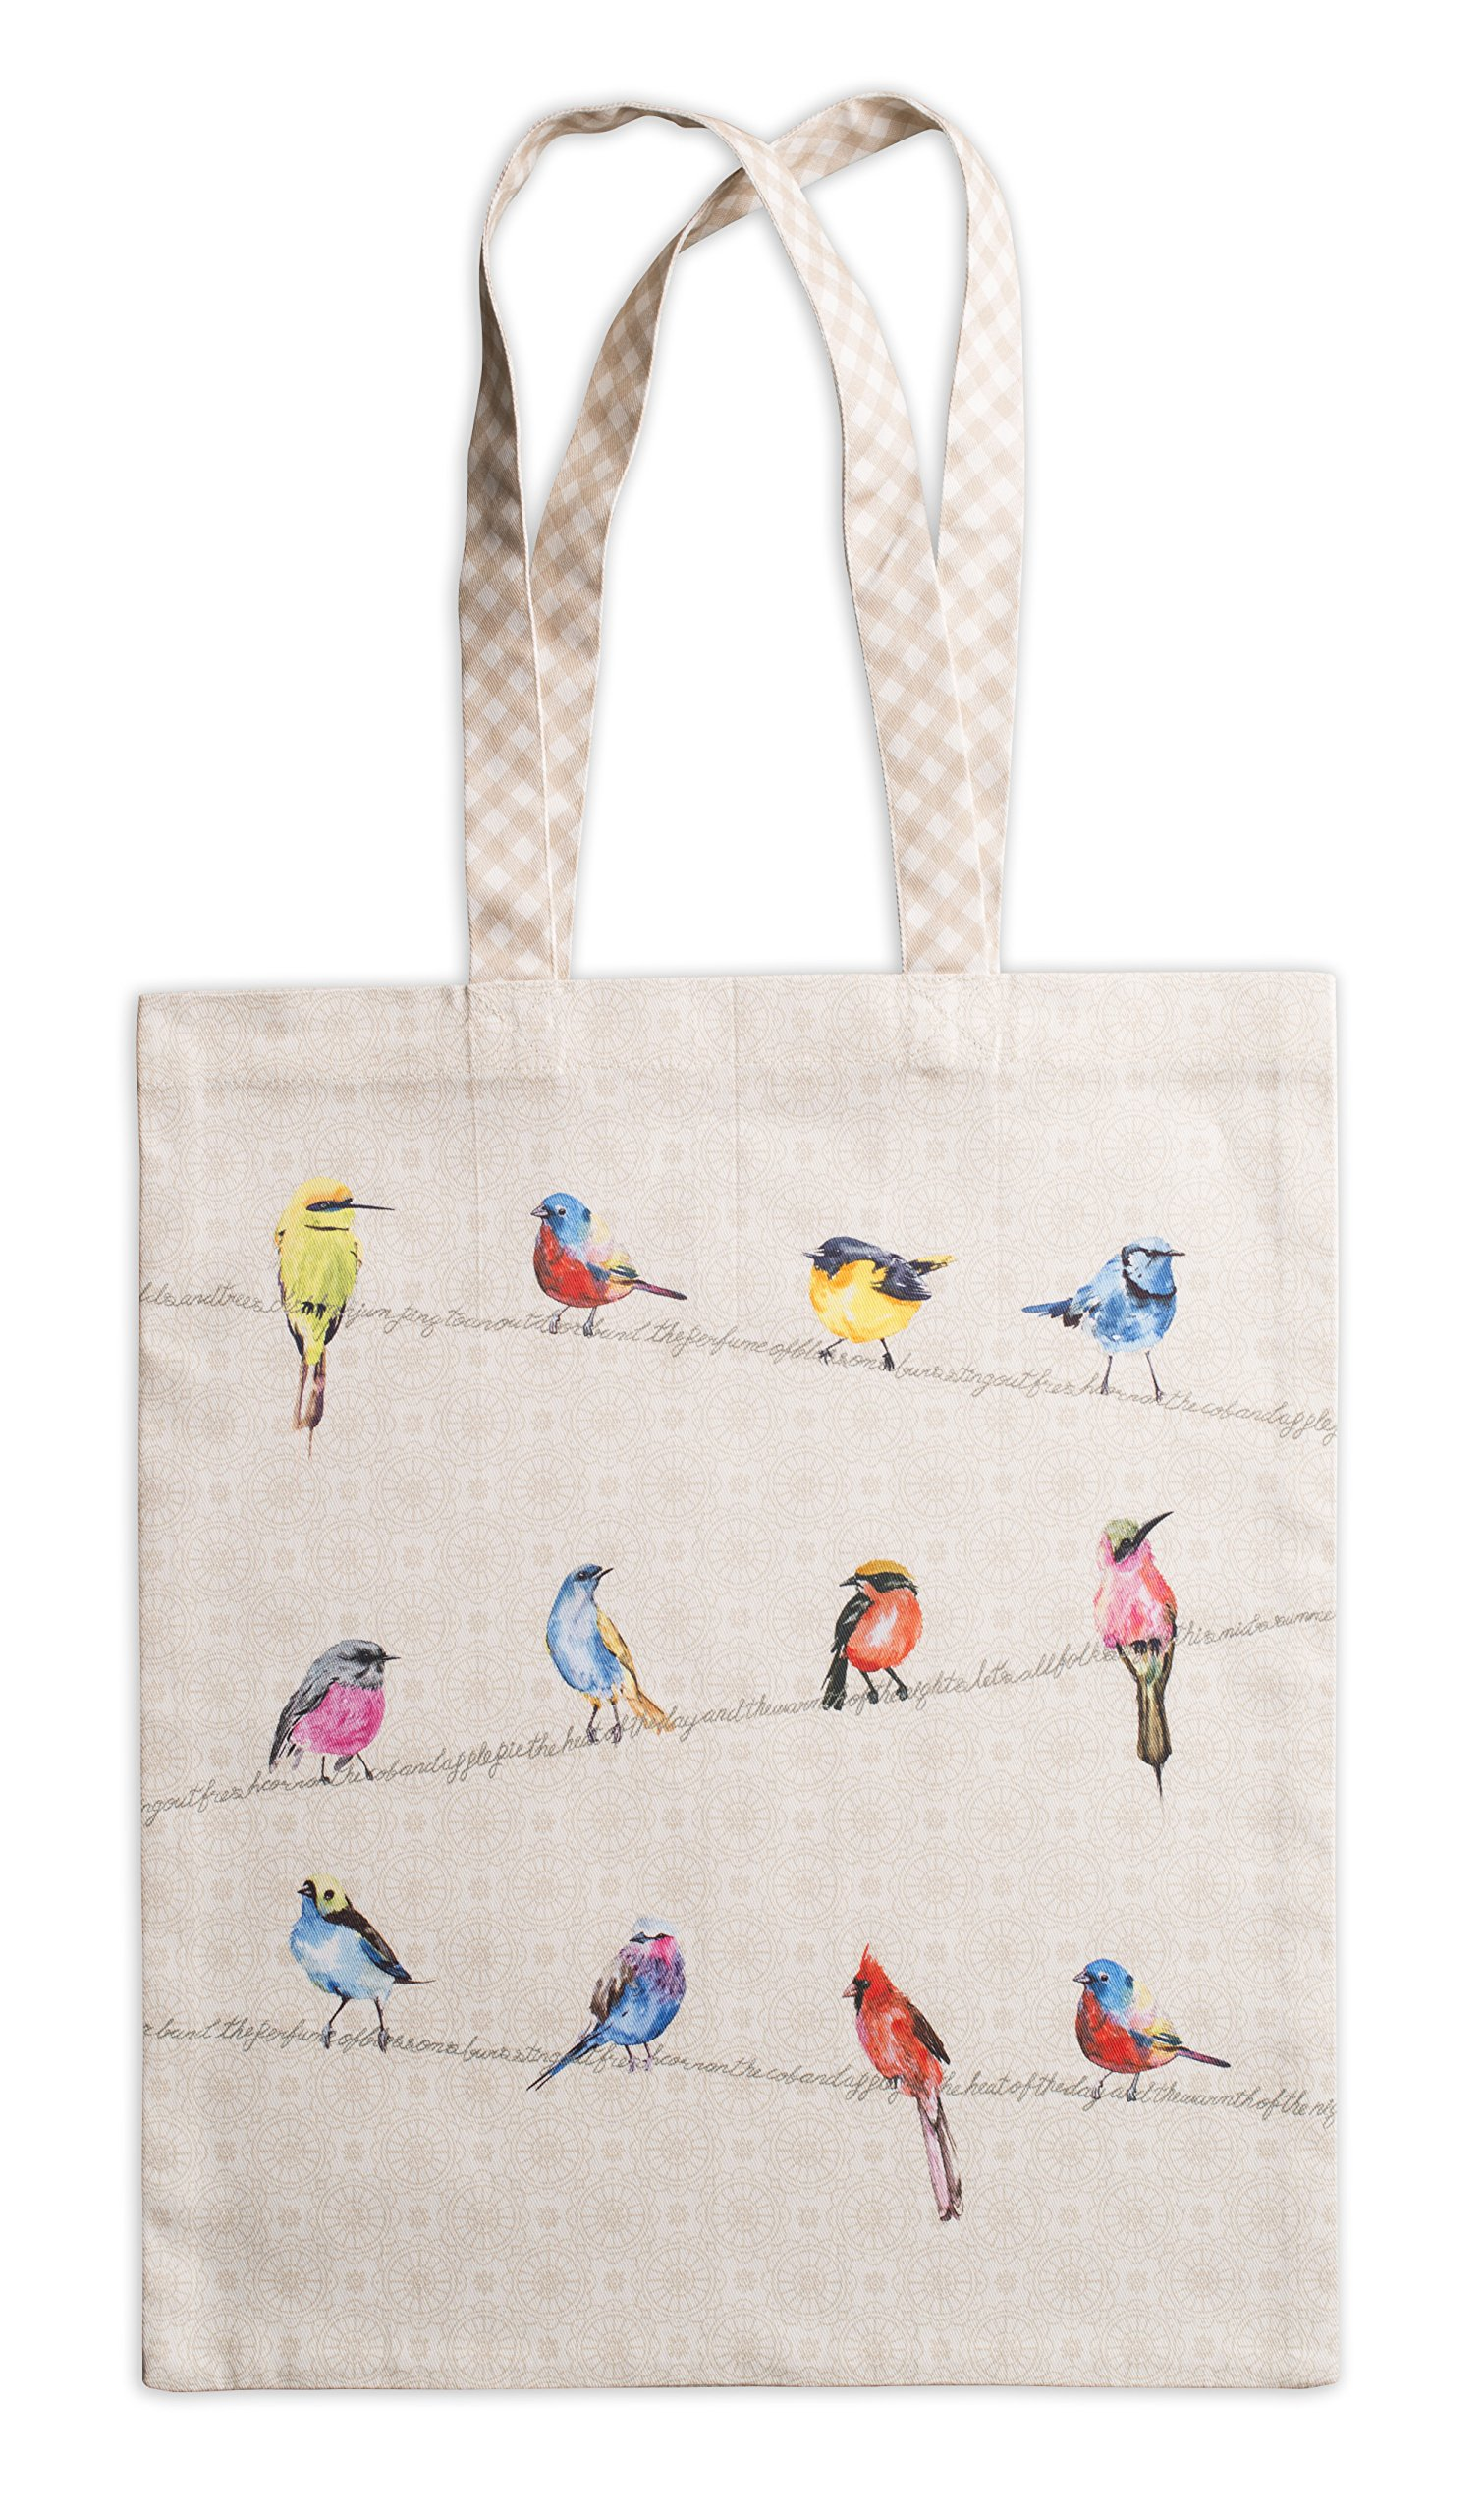 Maison d' Hermine Birdies On Wire 100% Cotton Tote Bag 14 Inch by 17 Inch